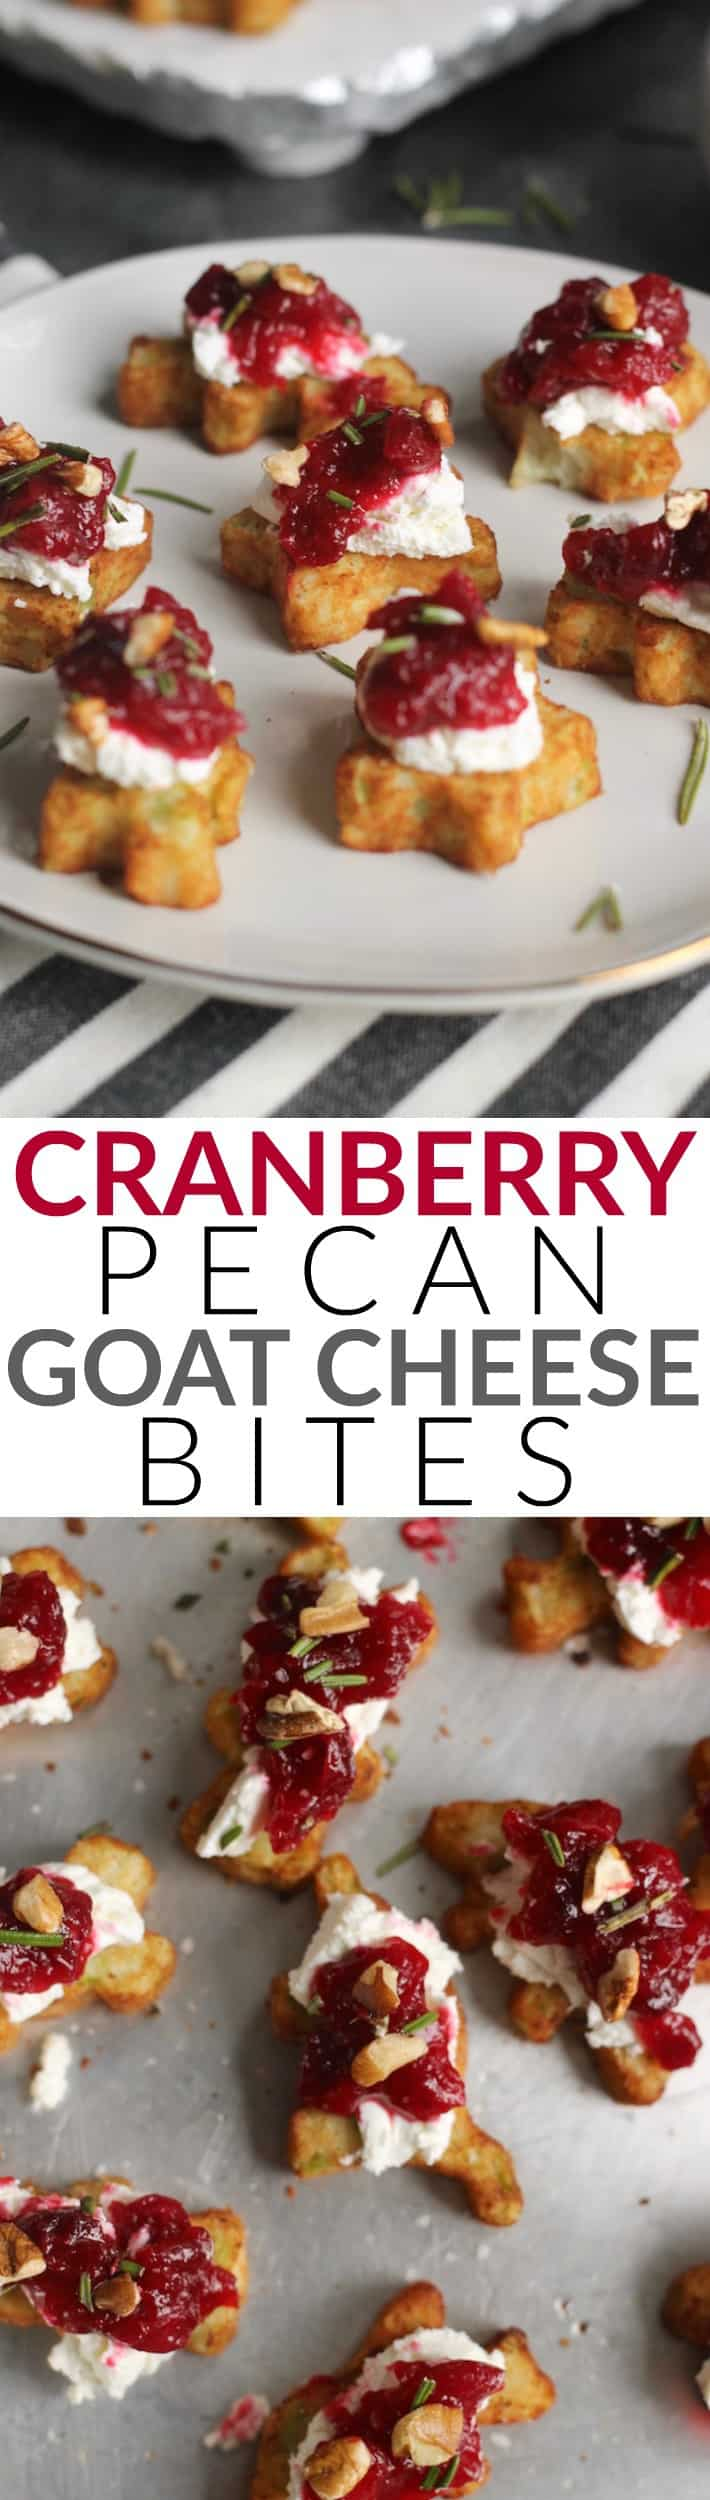 These Cranberry Pecan Goat Cheese Bites are made with Orange Bourbon Cranberry Sauce paired with creamy goat cheese, crunchy pecans, and fresh rosemary for an easy and delicious holiday appetizer.